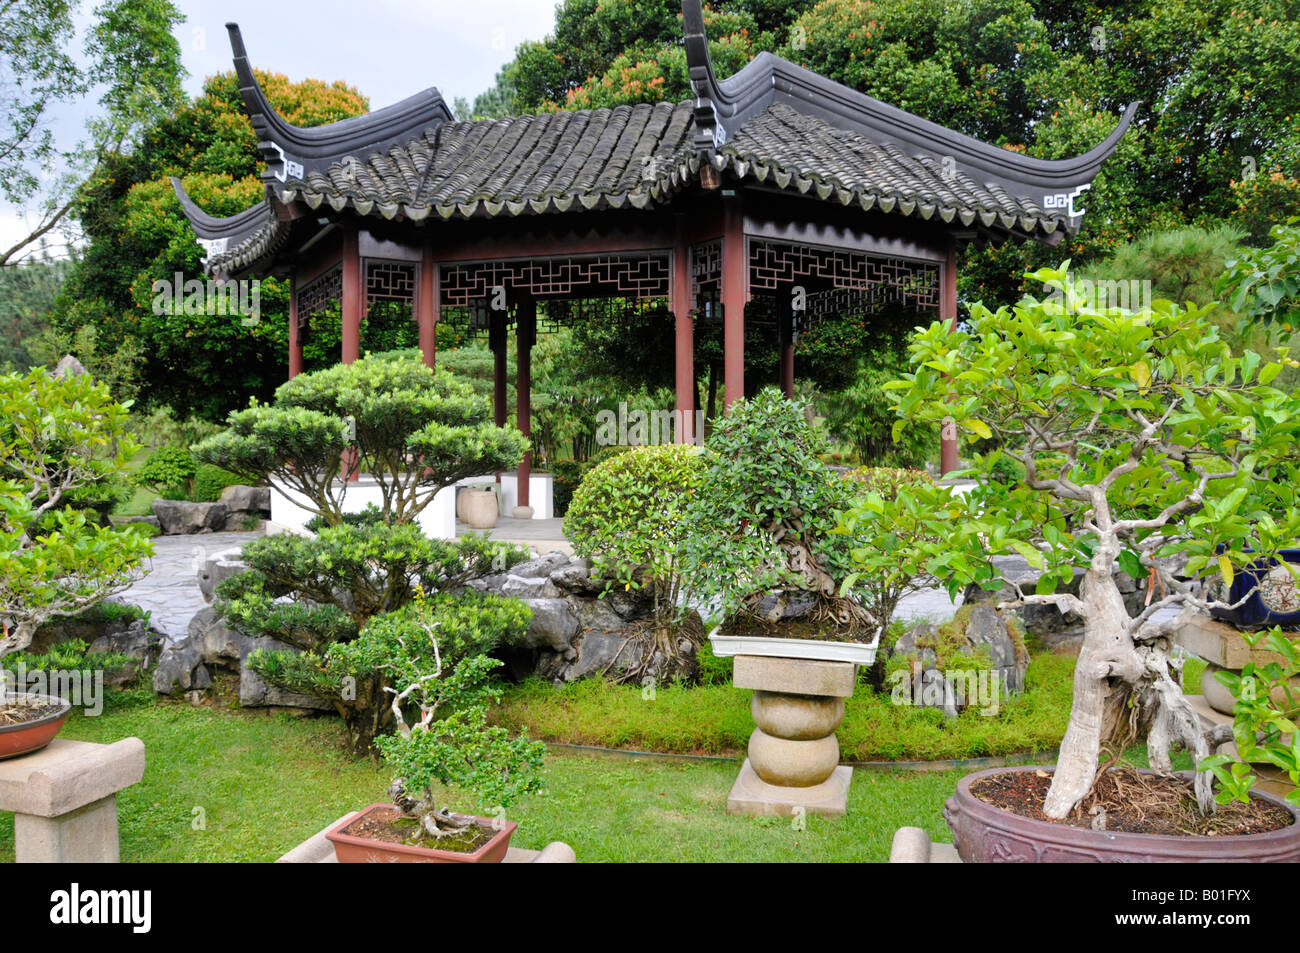 Bonsai Tree Garden In Chinese And Japanese Gardens In Singapore